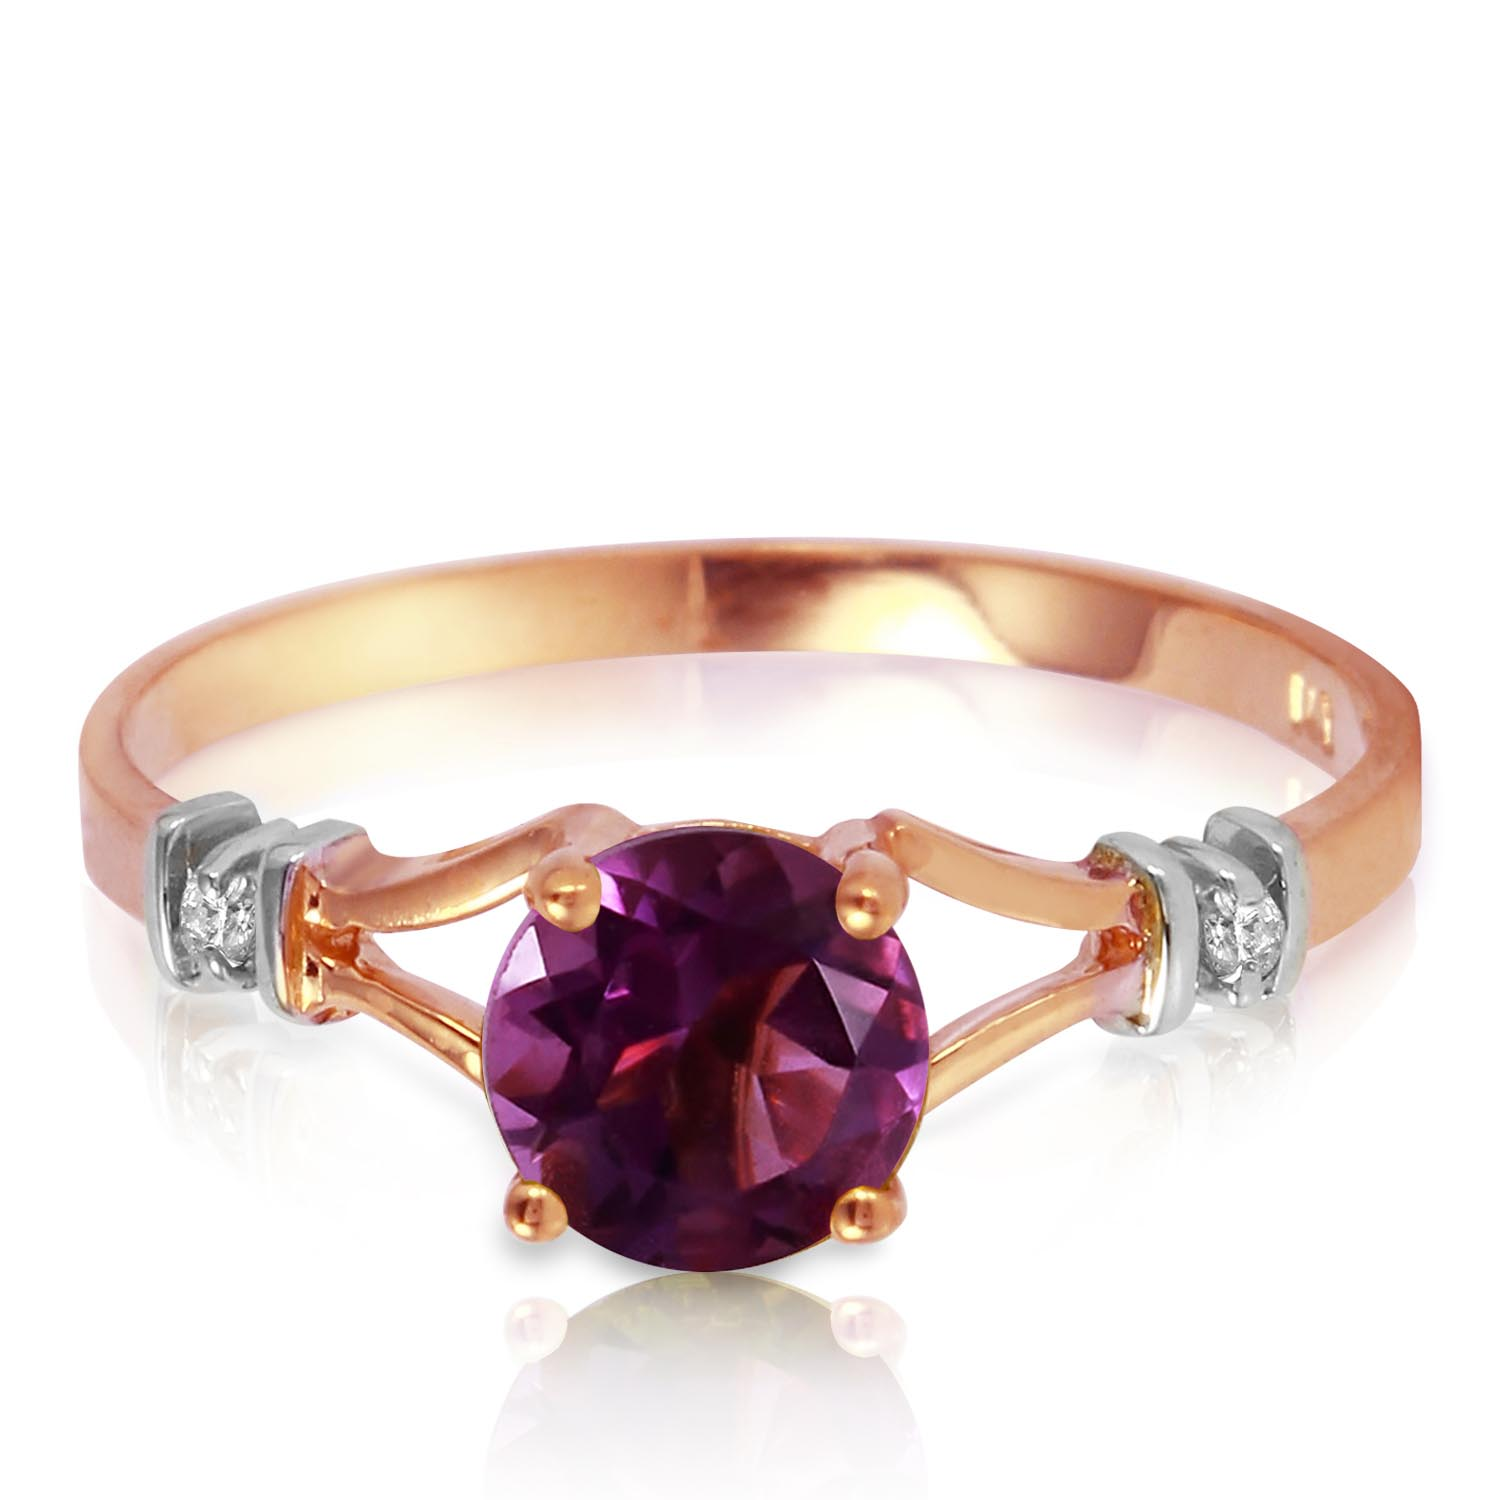 Stockists of Amethyst and Diamond Aspire Ring 0.9ct in 9ct Rose Gold